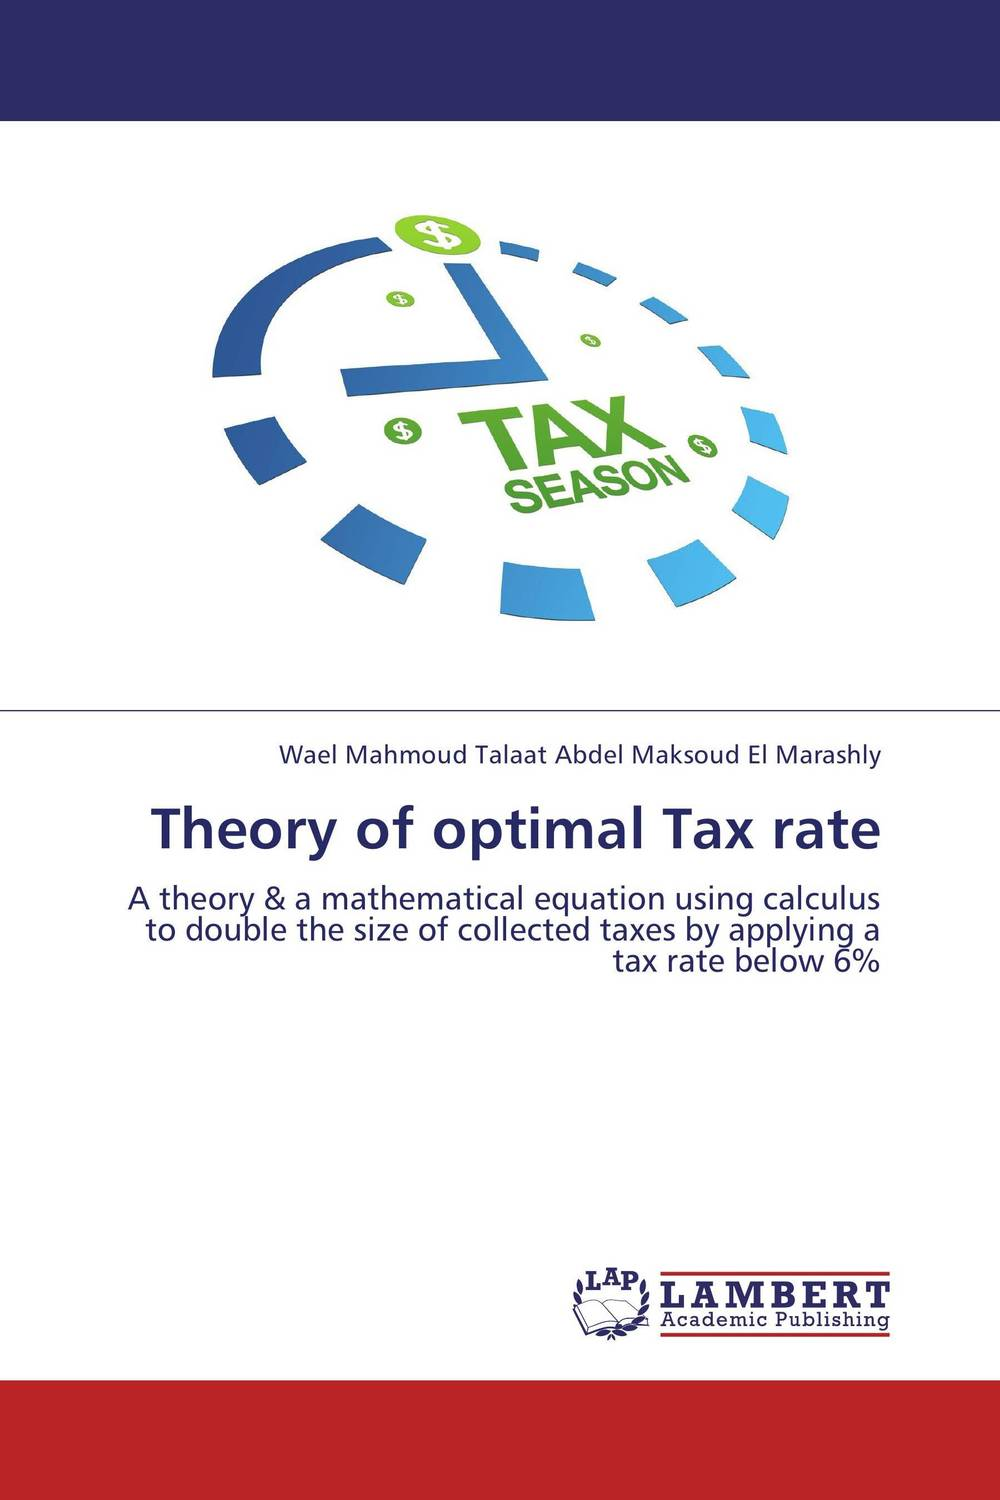 Theory of optimal Tax rate